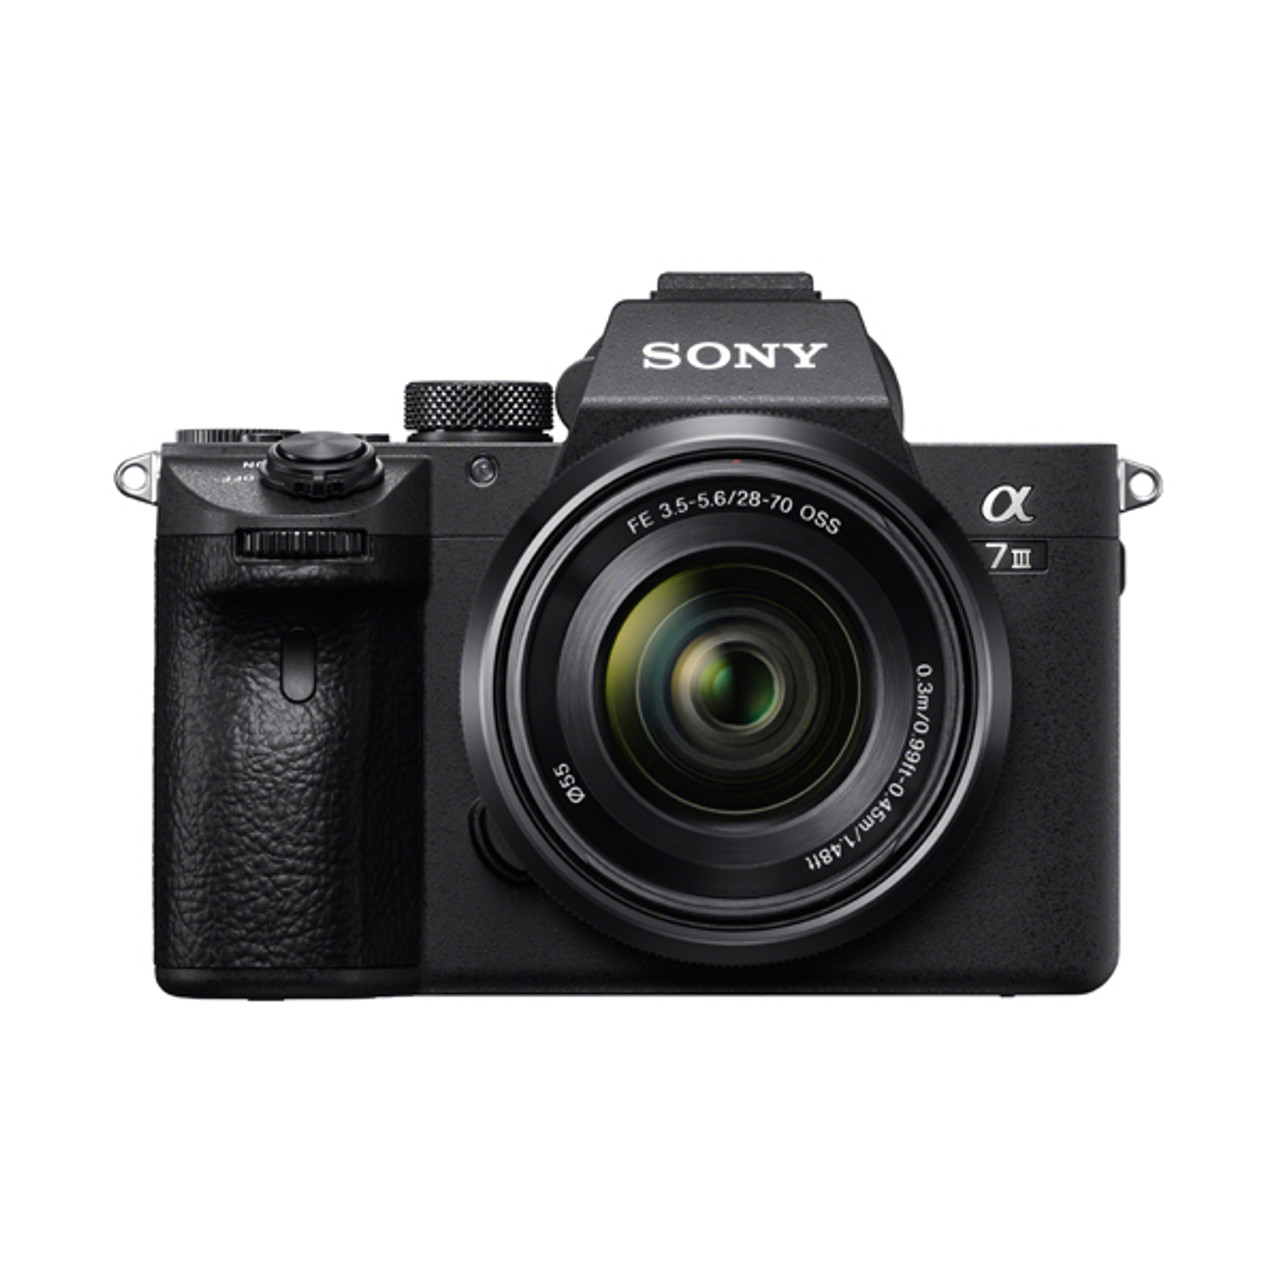 Sony A7 III 28-70mm Kit